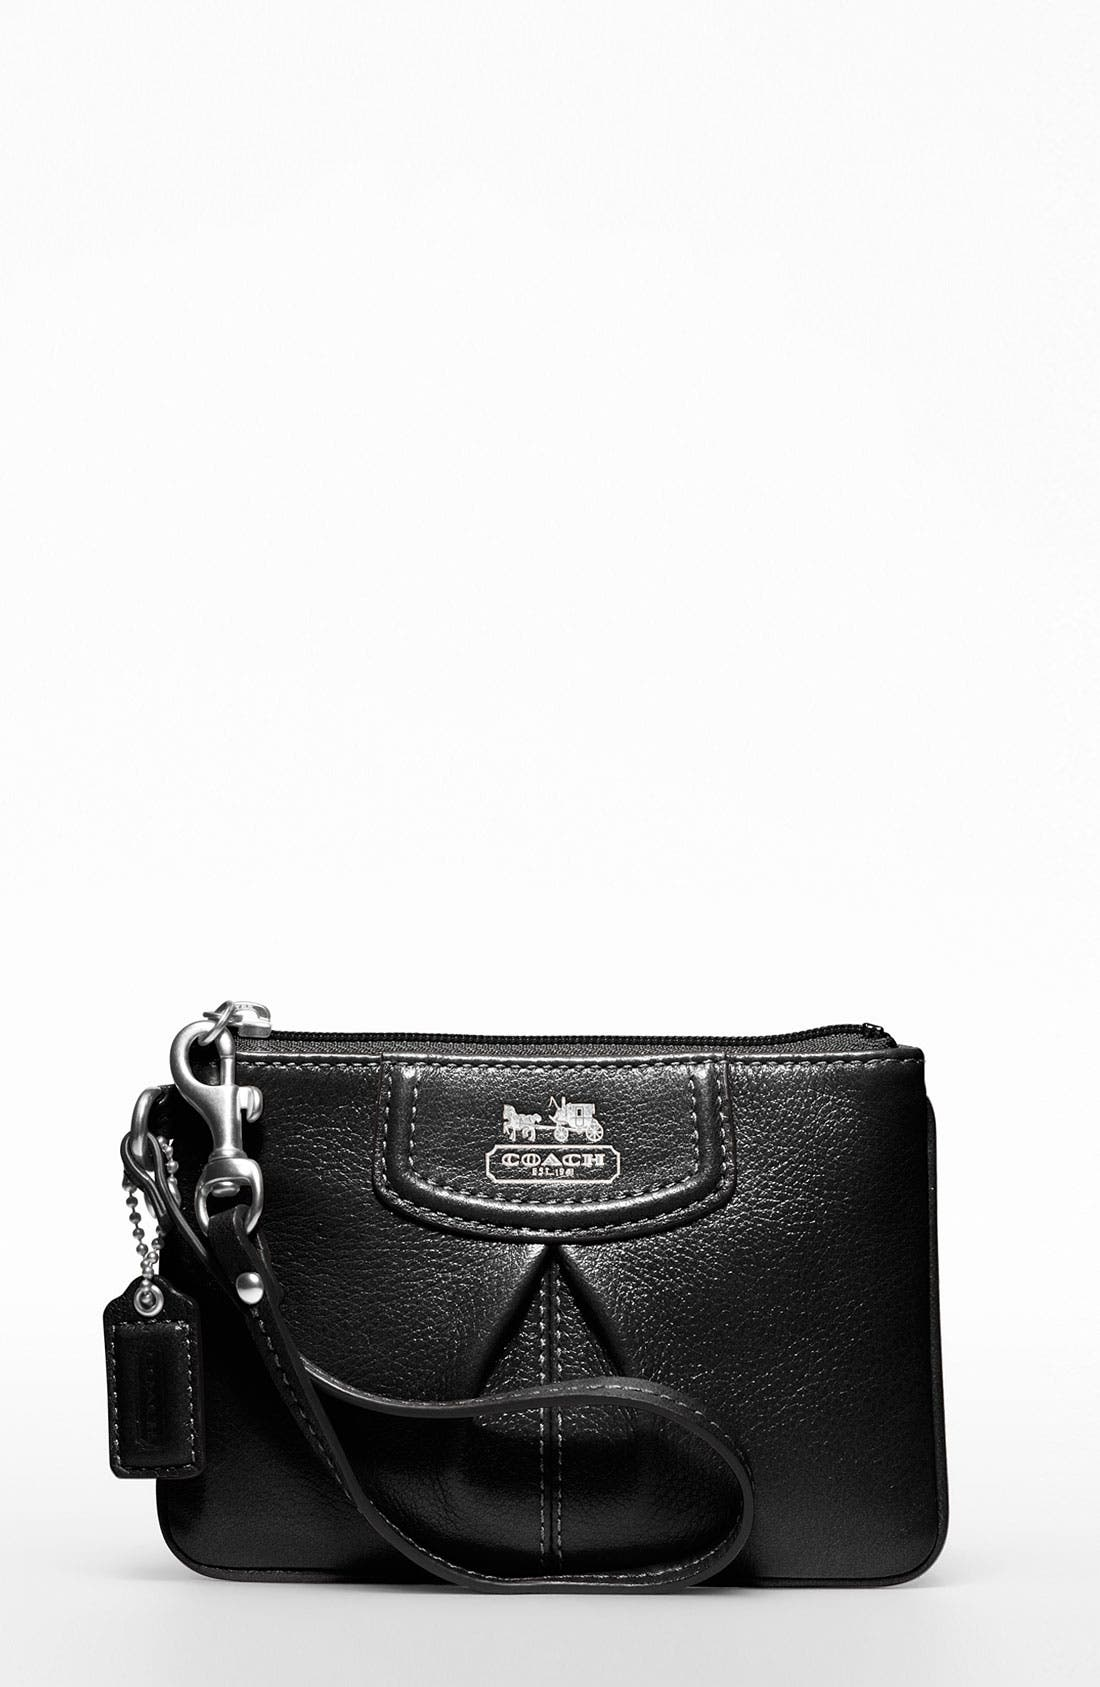 Main Image - COACH MADISON LEATHER SMALL WRISTLET